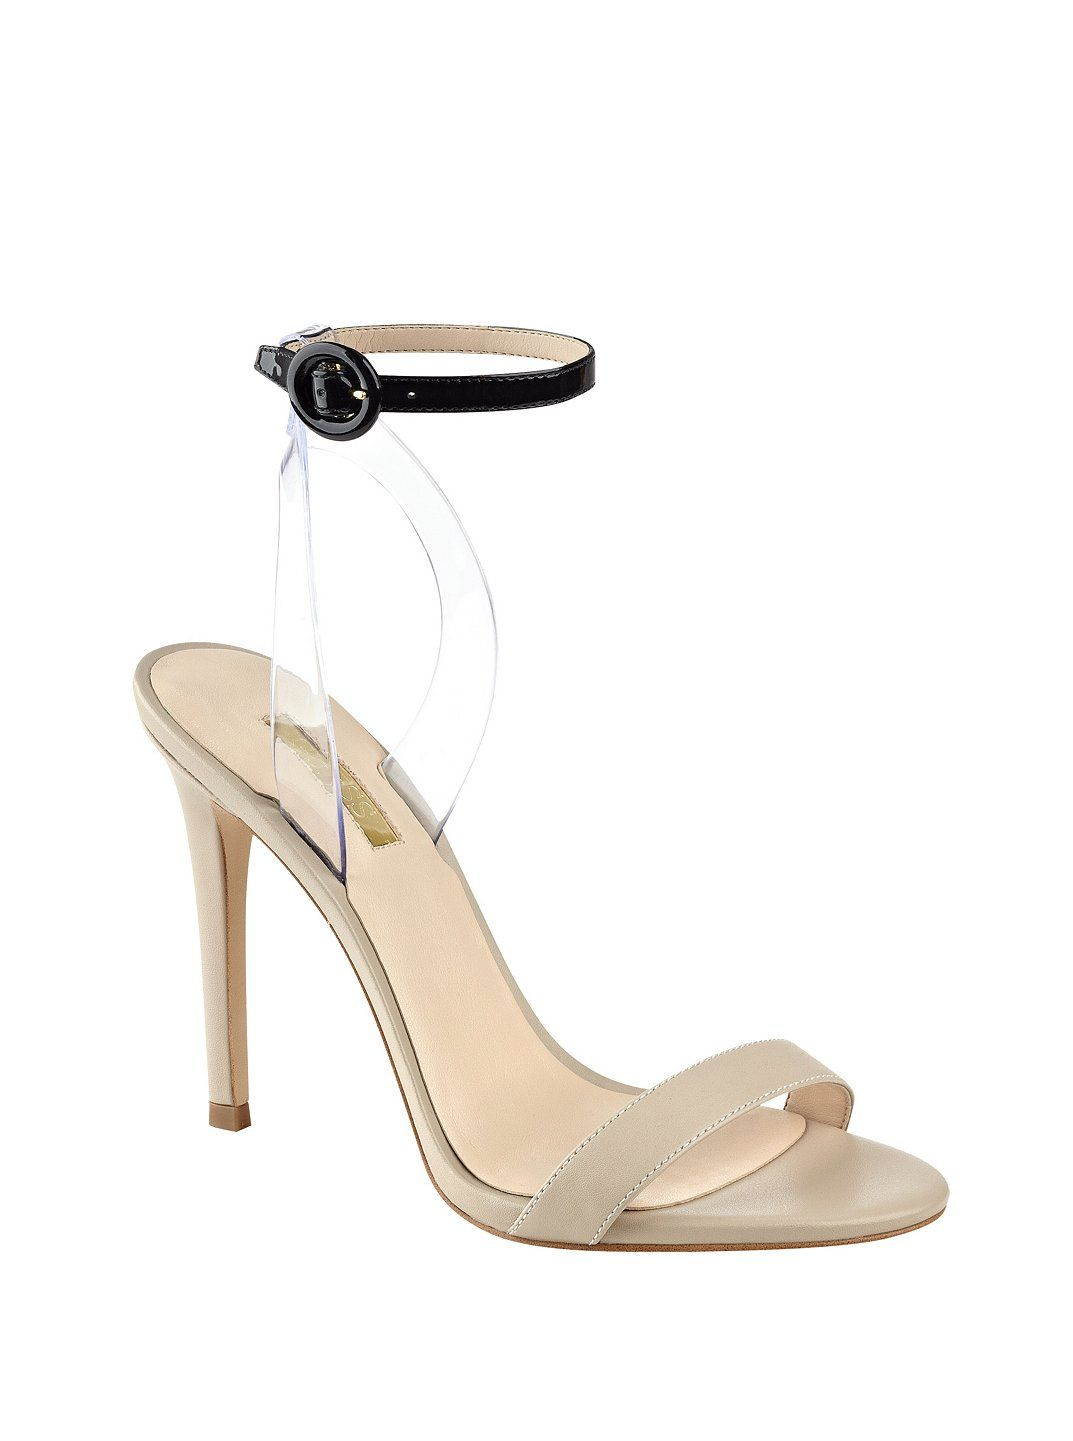 Emorie Clear-Strap Heels at Guess